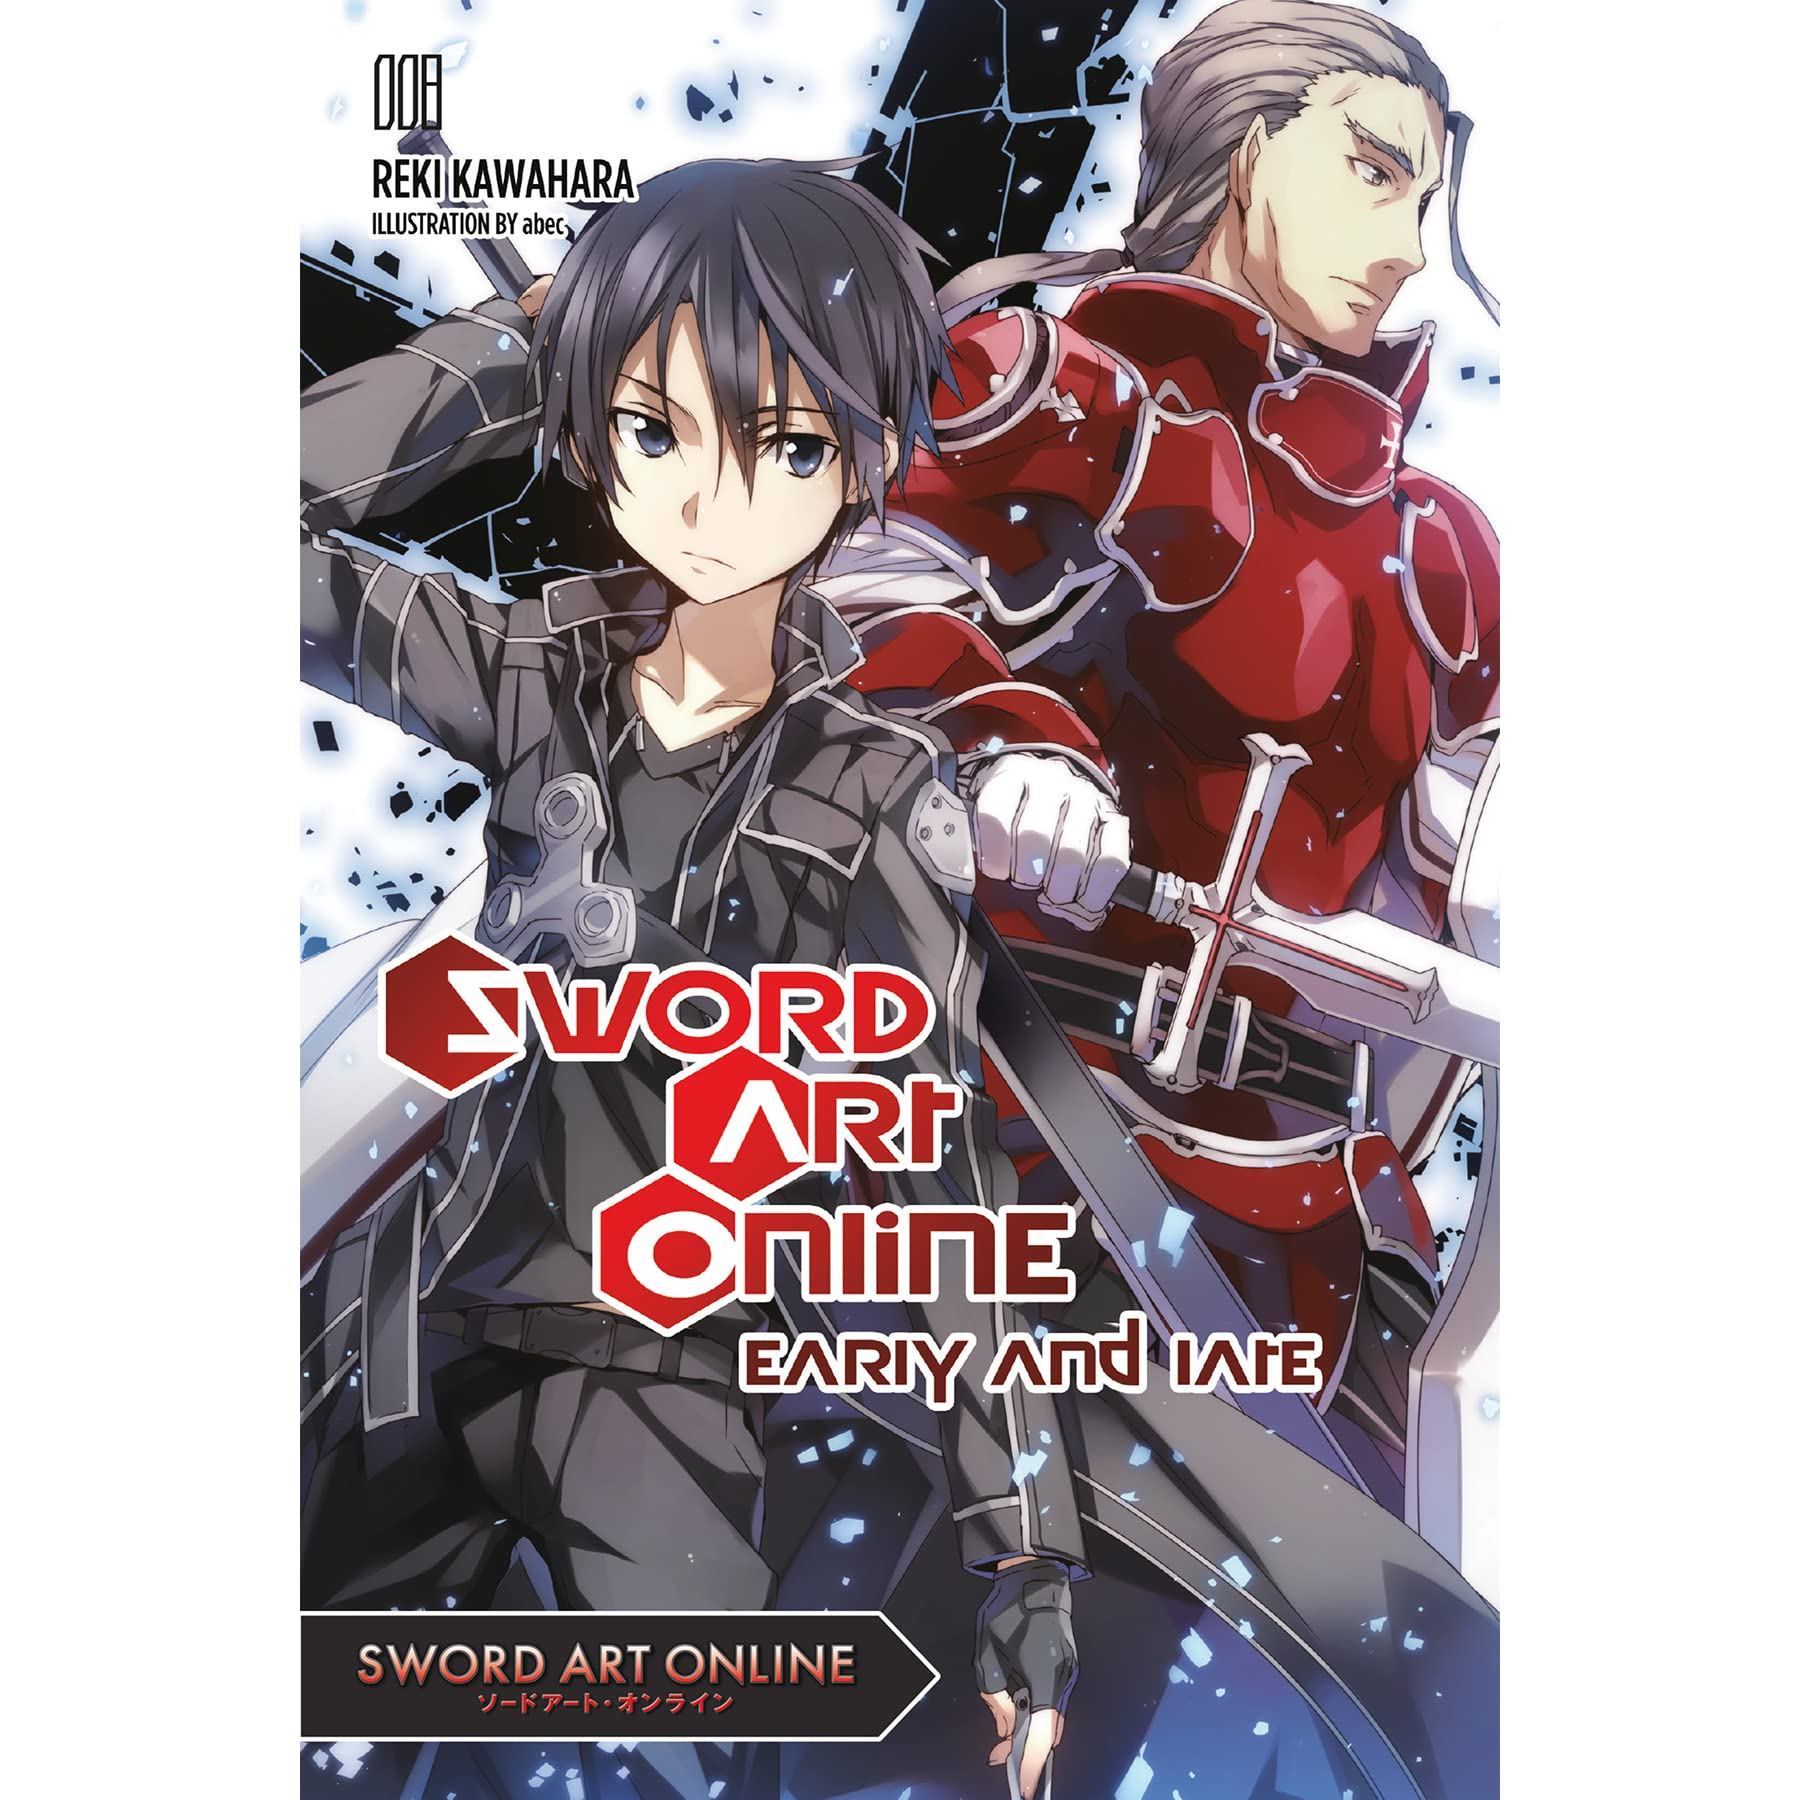 Sword Art Online 8 Early And Late By Reki Kawahara If u dont have netflix or a crunchyroll use the website twist.moe. goodreads